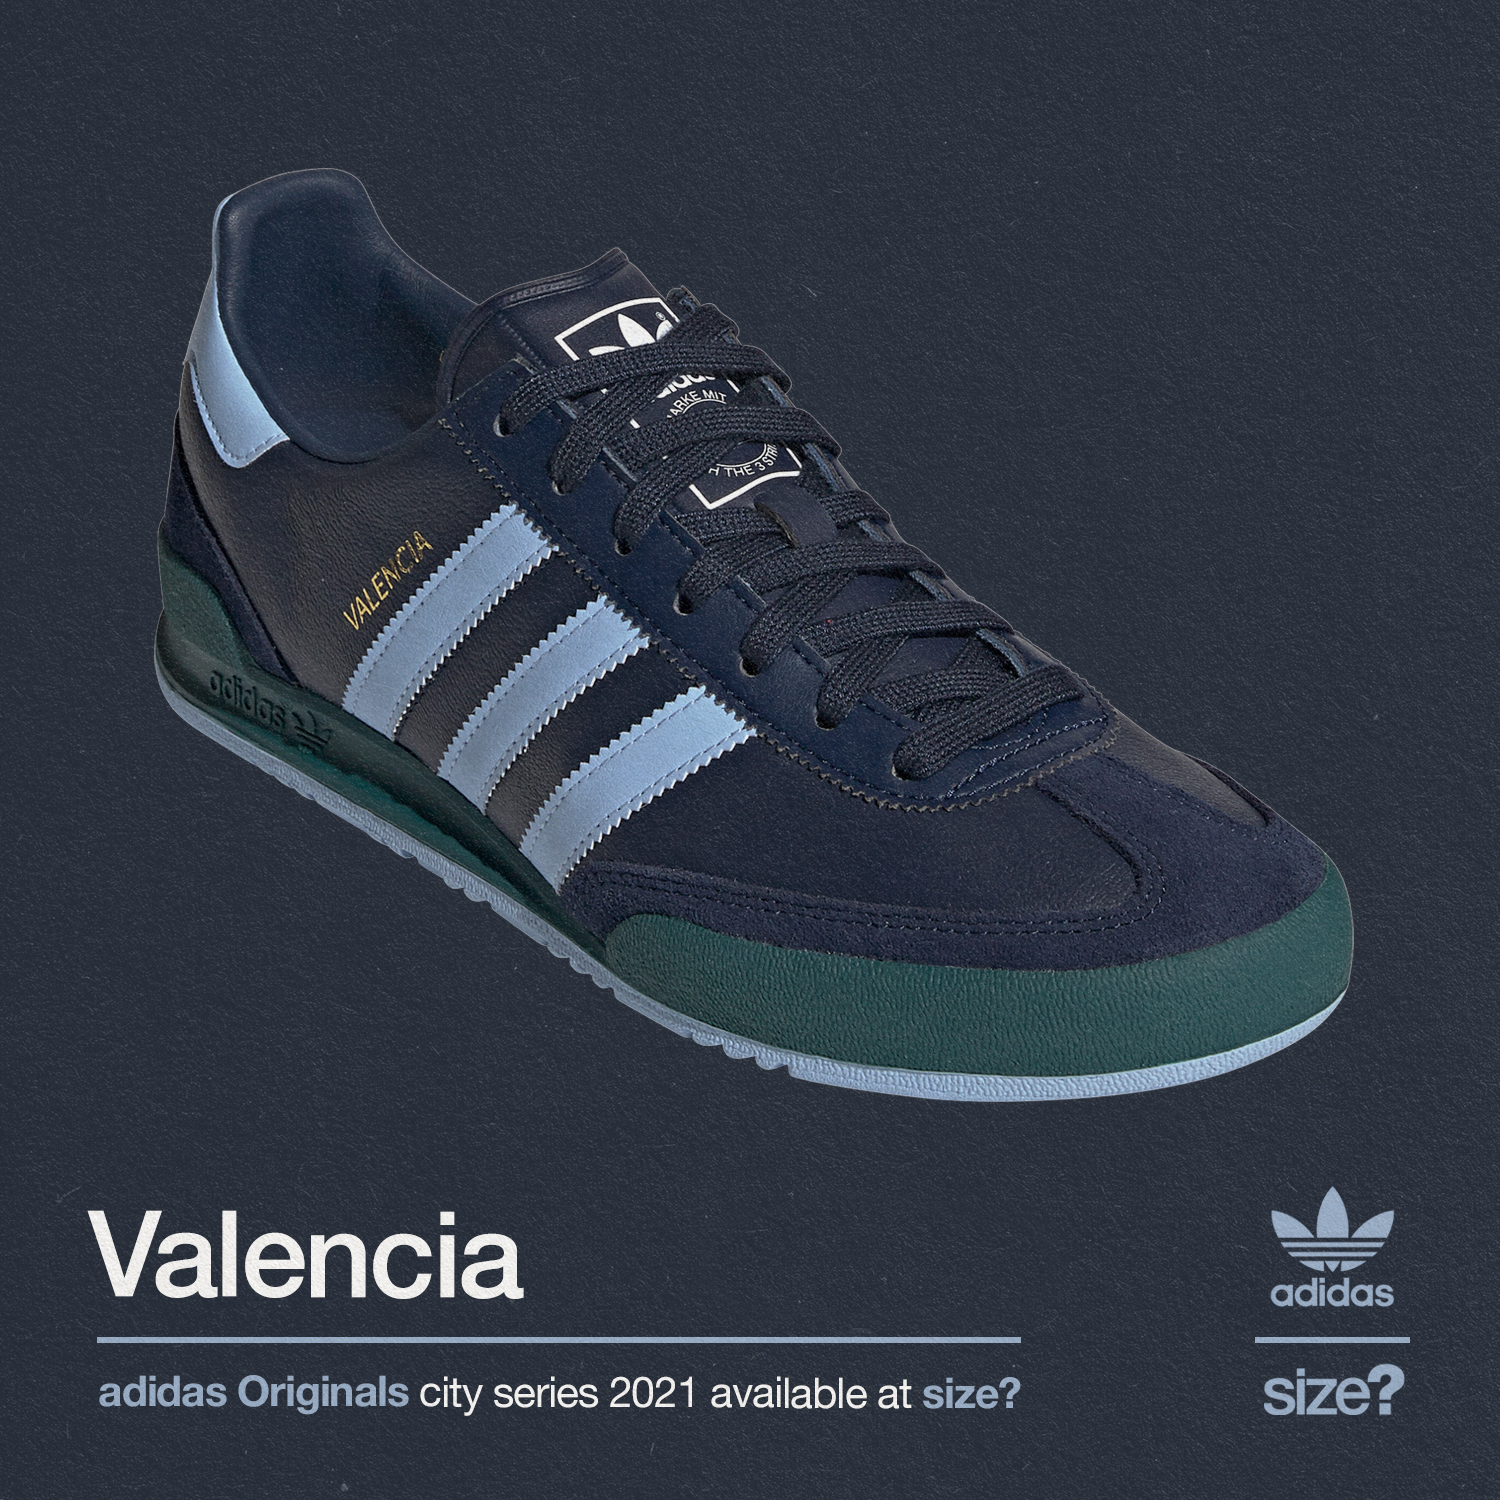 The adidas Originals Valencia is back once more - size? blog